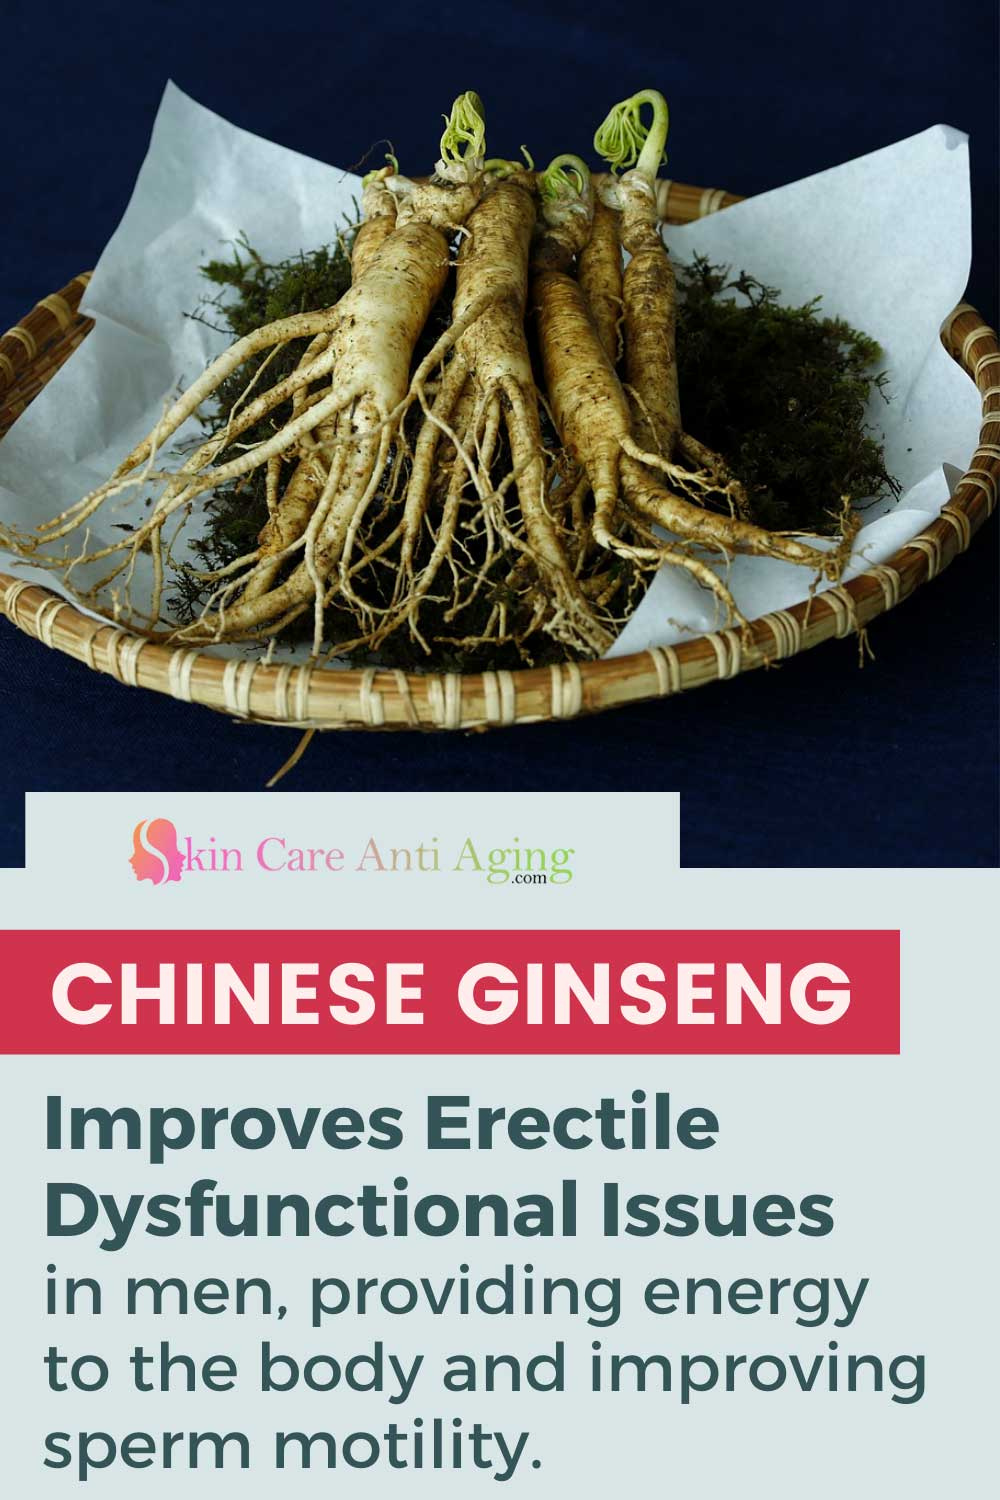 Chinese Ginseng improves erectile dysfunctional issues in men